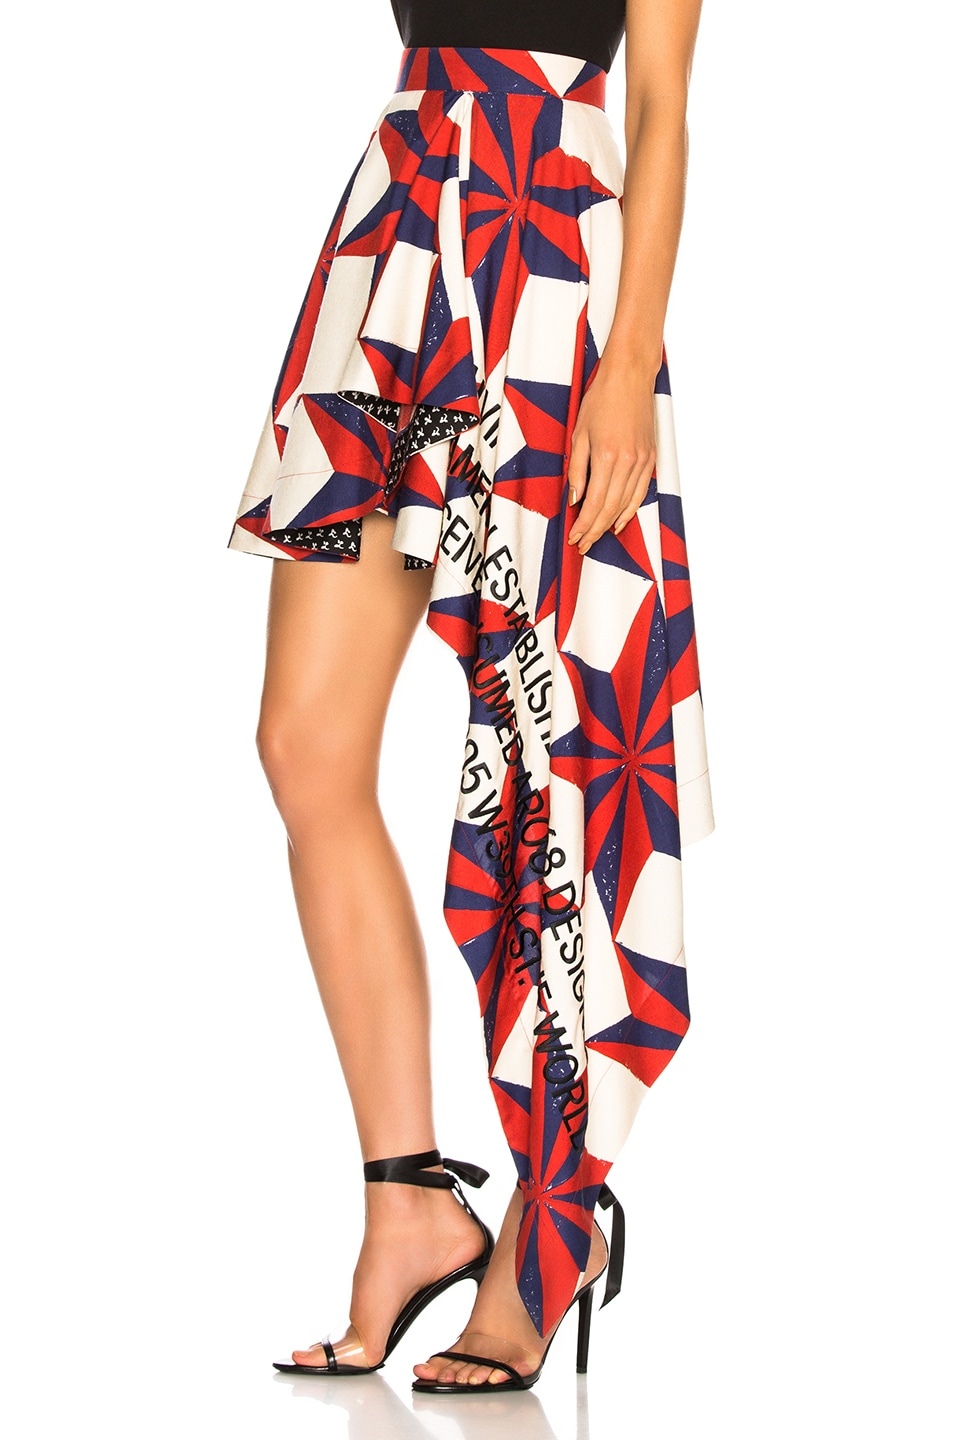 Image 3 of CALVIN KLEIN 205W39NYC Printed Asymmetric Ruffle Skirt in Ecru, Blue, Red & Black